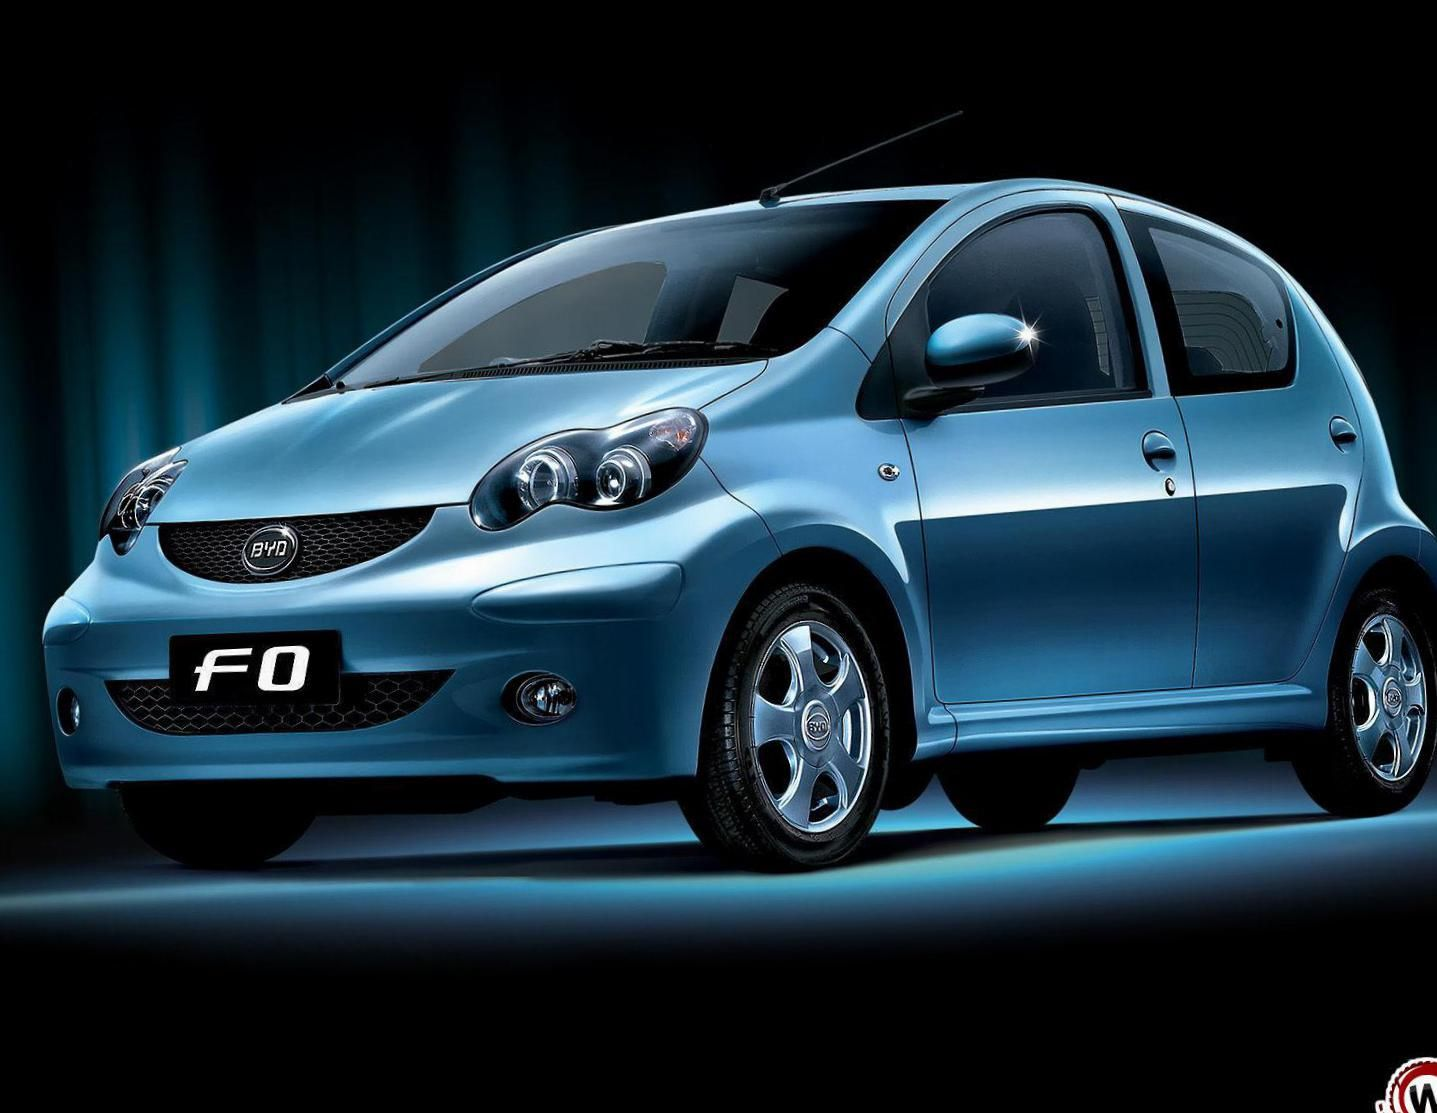 Byd F0 Photos And Specs Photo Byd F0 Auto And 22 Perfect Photos Of Byd F0 Auto Bmw Car Car